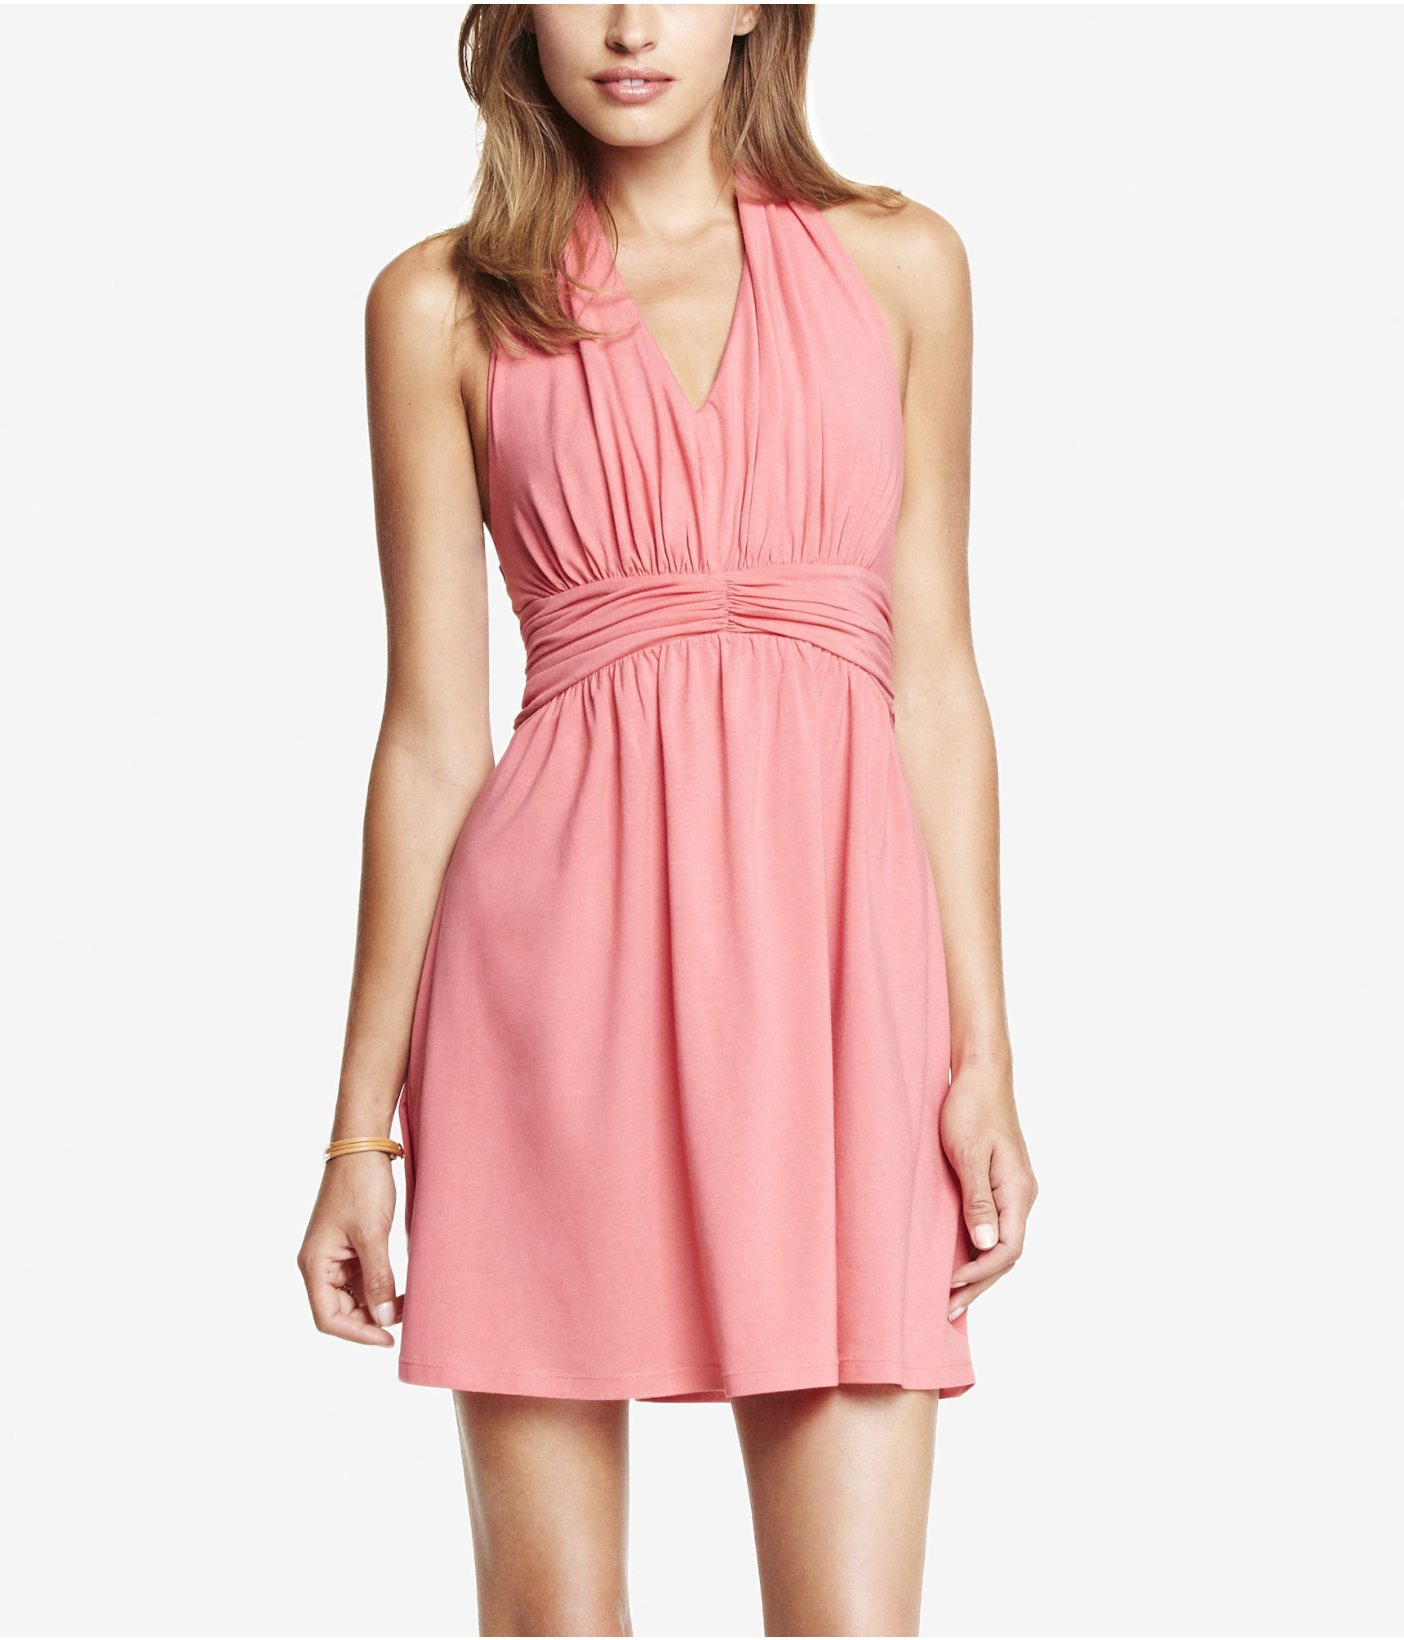 Express Light Pink Ruched Jersey Halter Dress in Pink ...